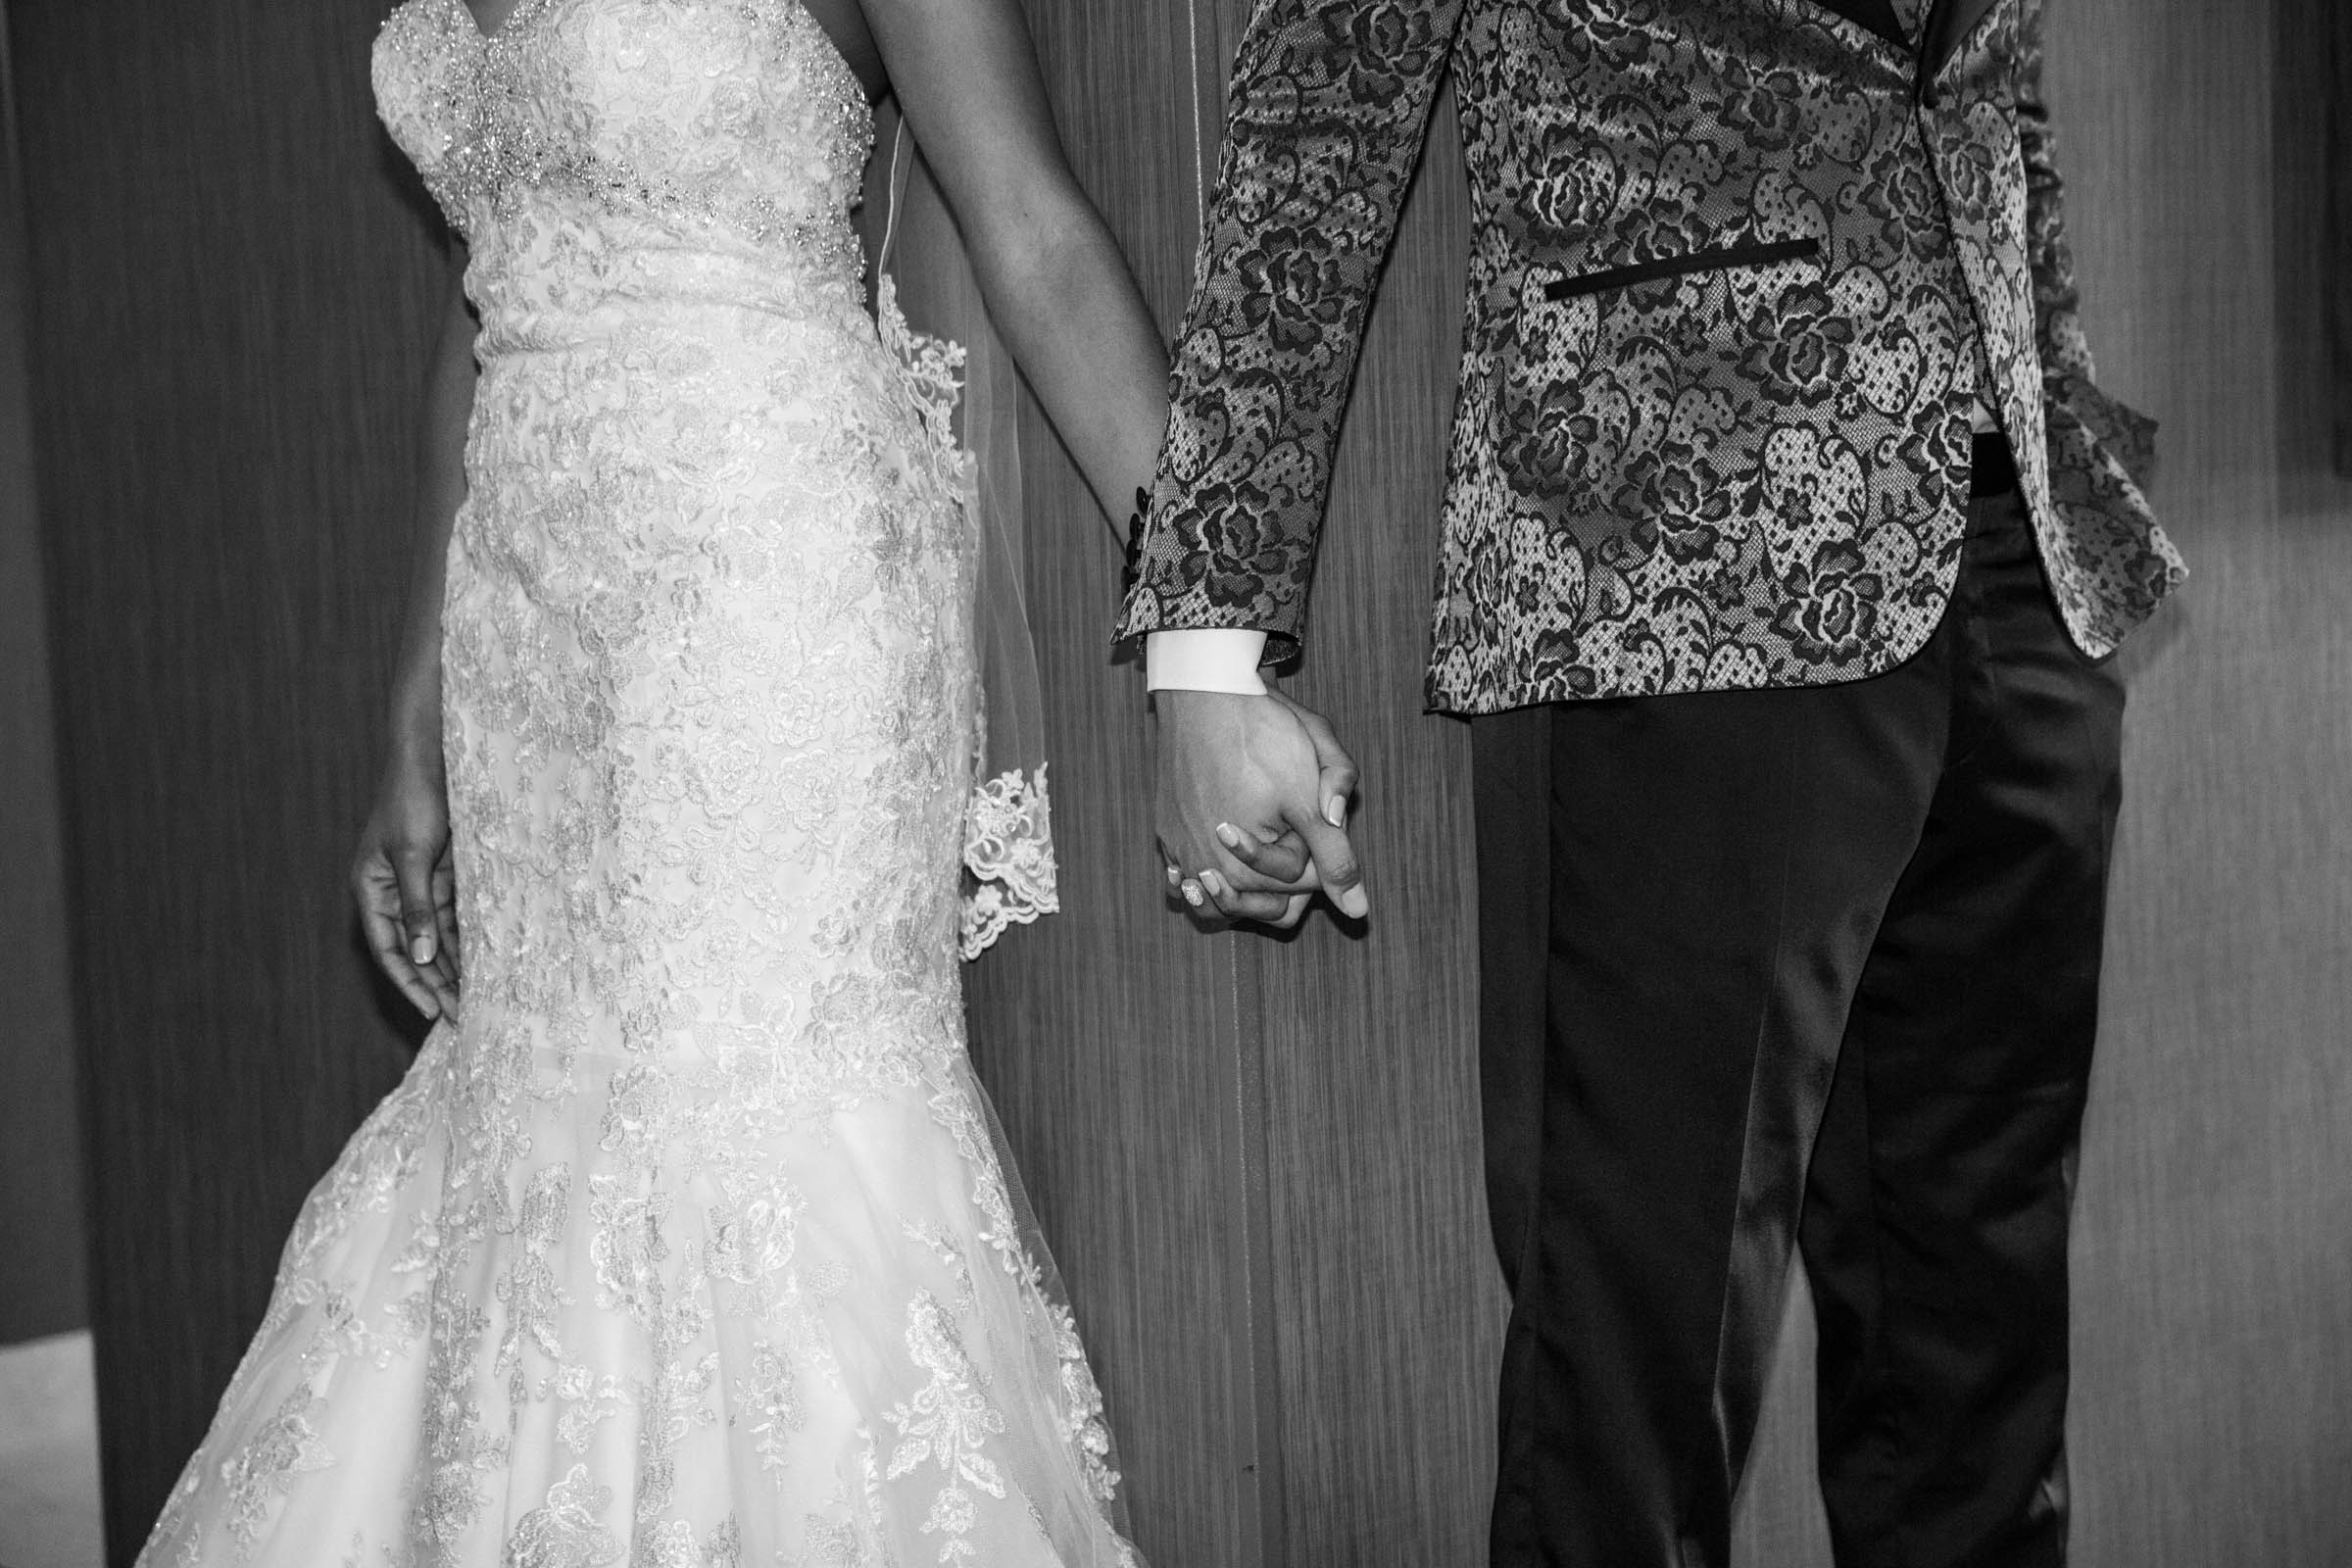 Black Bride Dream Wedding at  Hyatt Regency Fairfax Virginia Husband and Wife Wedding Photographers Megapixels Media Photography (42 of 104).jpg